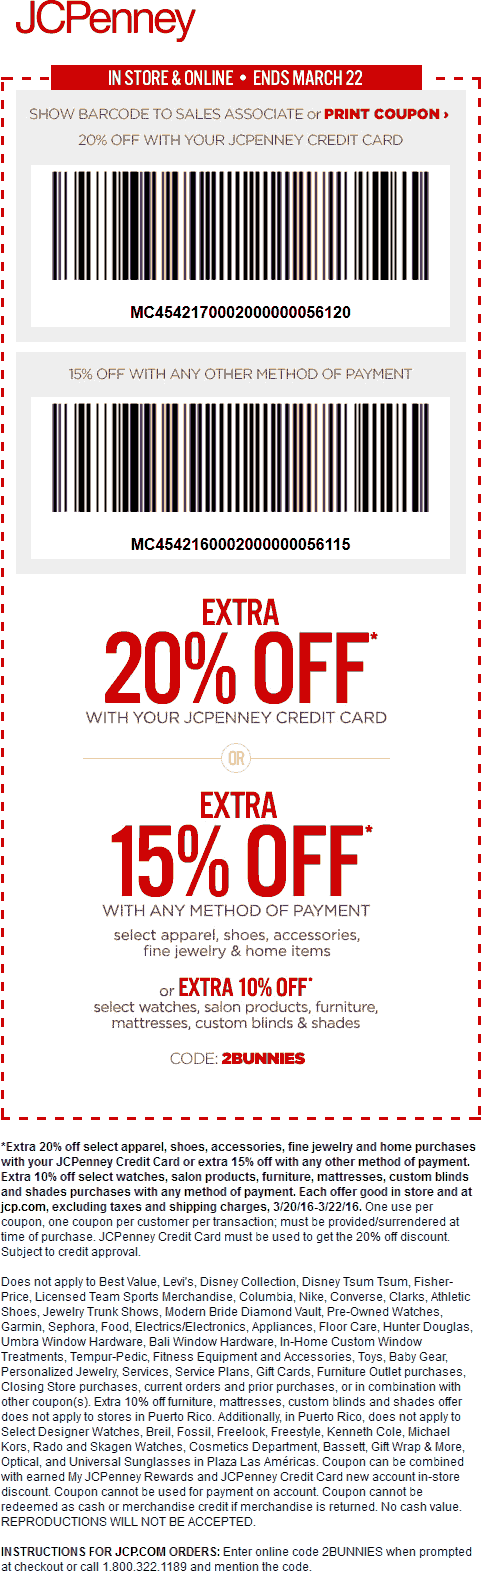 JCPenney Coupon November 2018 15% off at JCPenney, or online via promo code 2BUNNIES